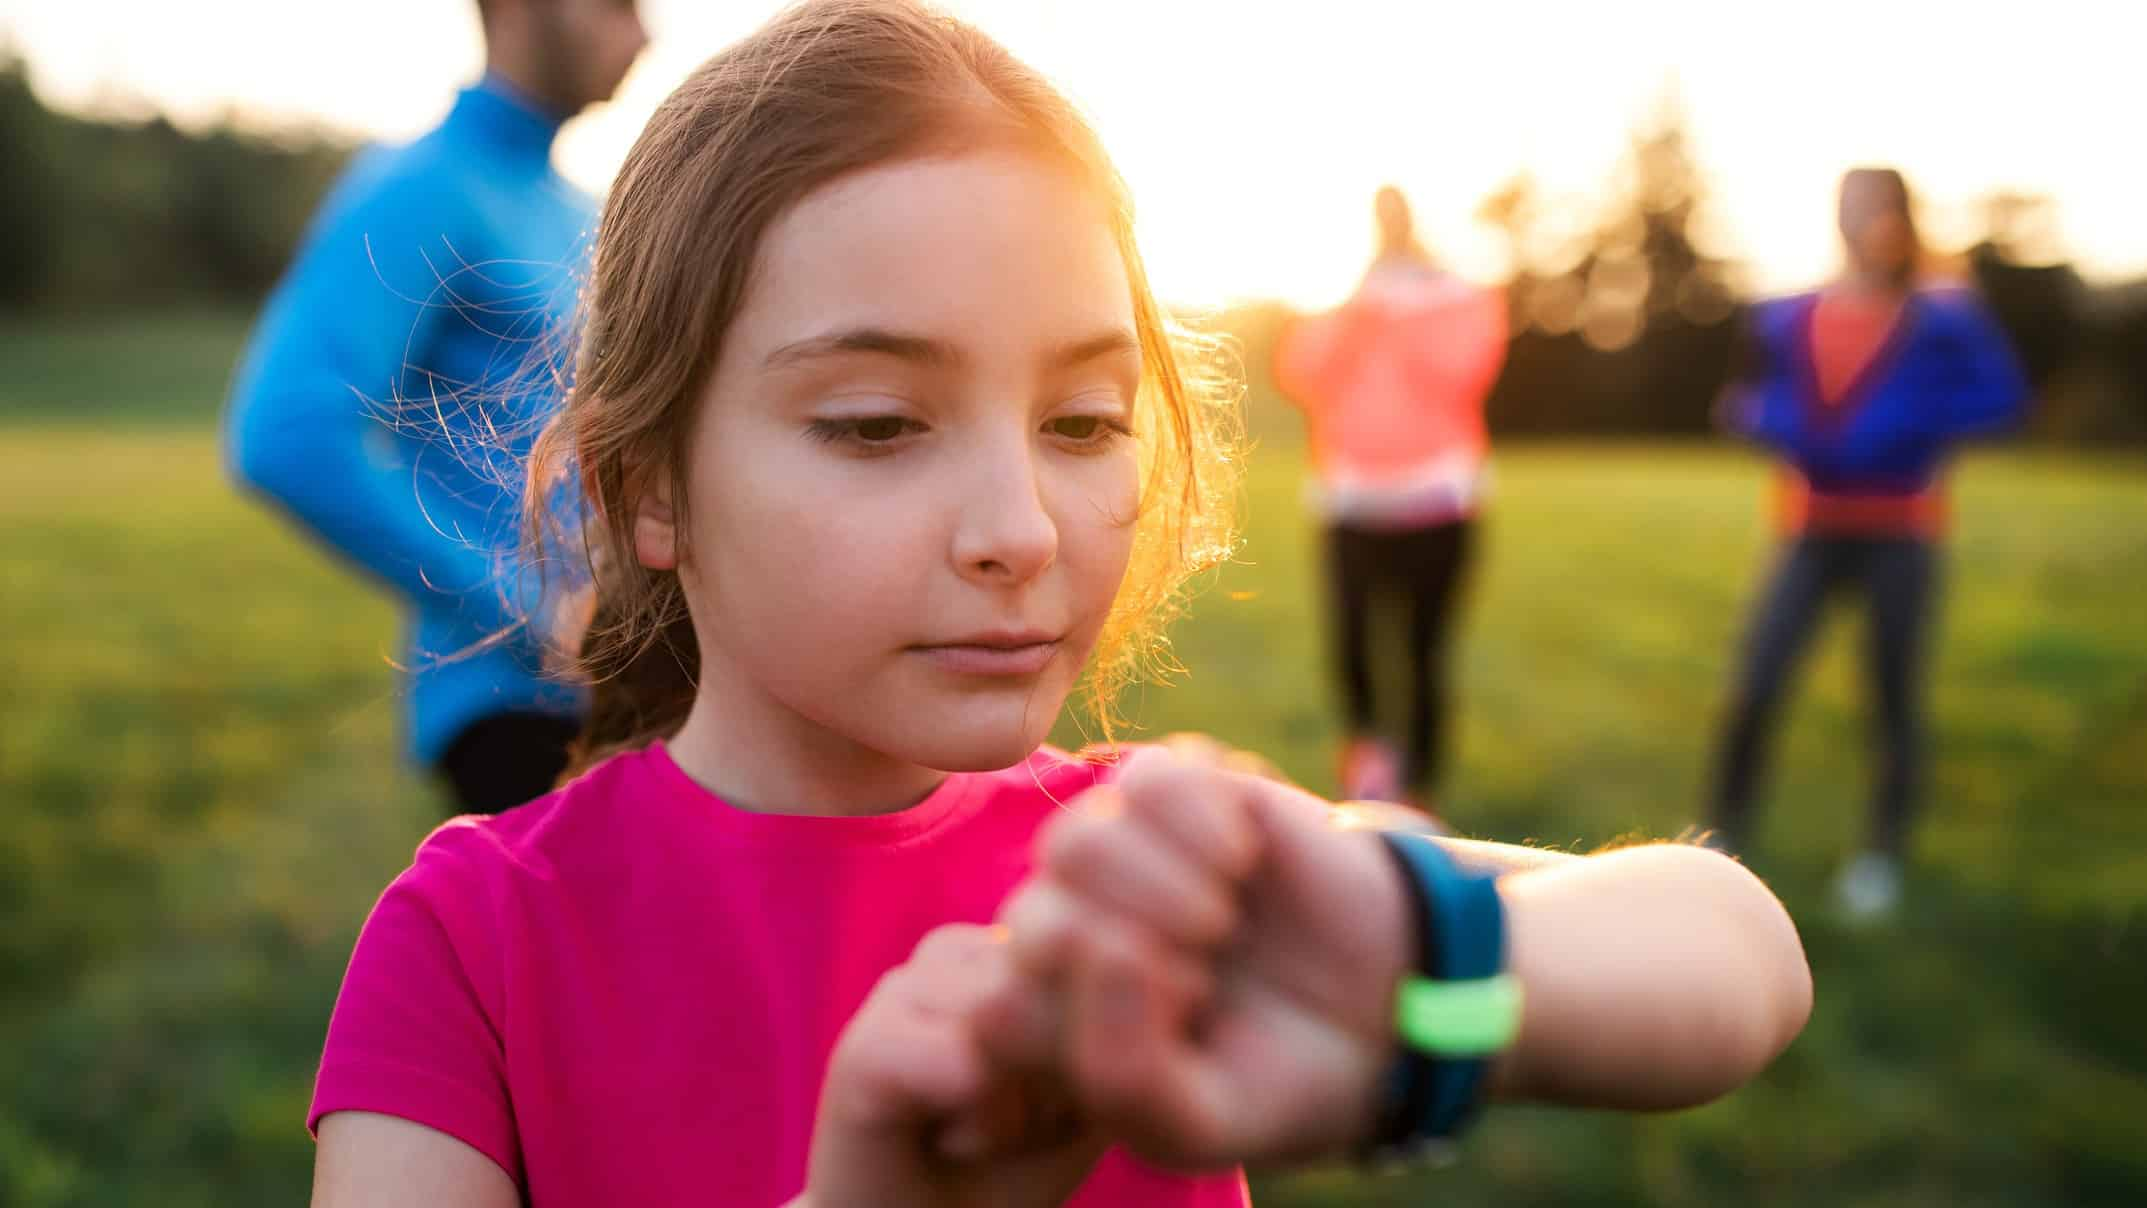 ASX wireless tech share represented by child looking at smart watch on her wrist